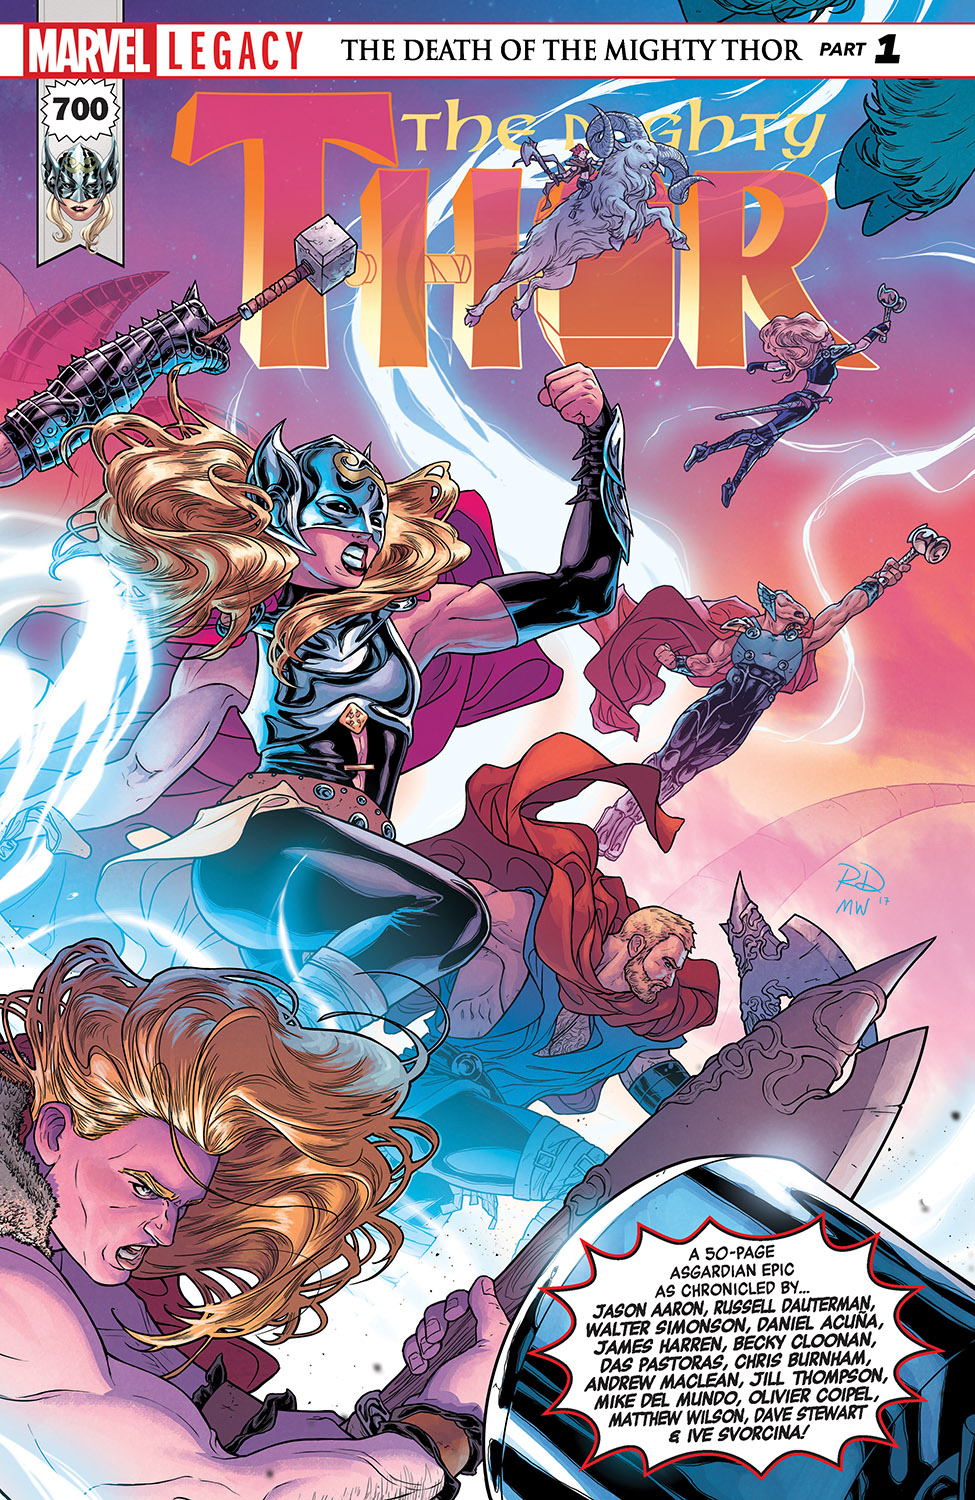 Mighty Thor (2015) #700